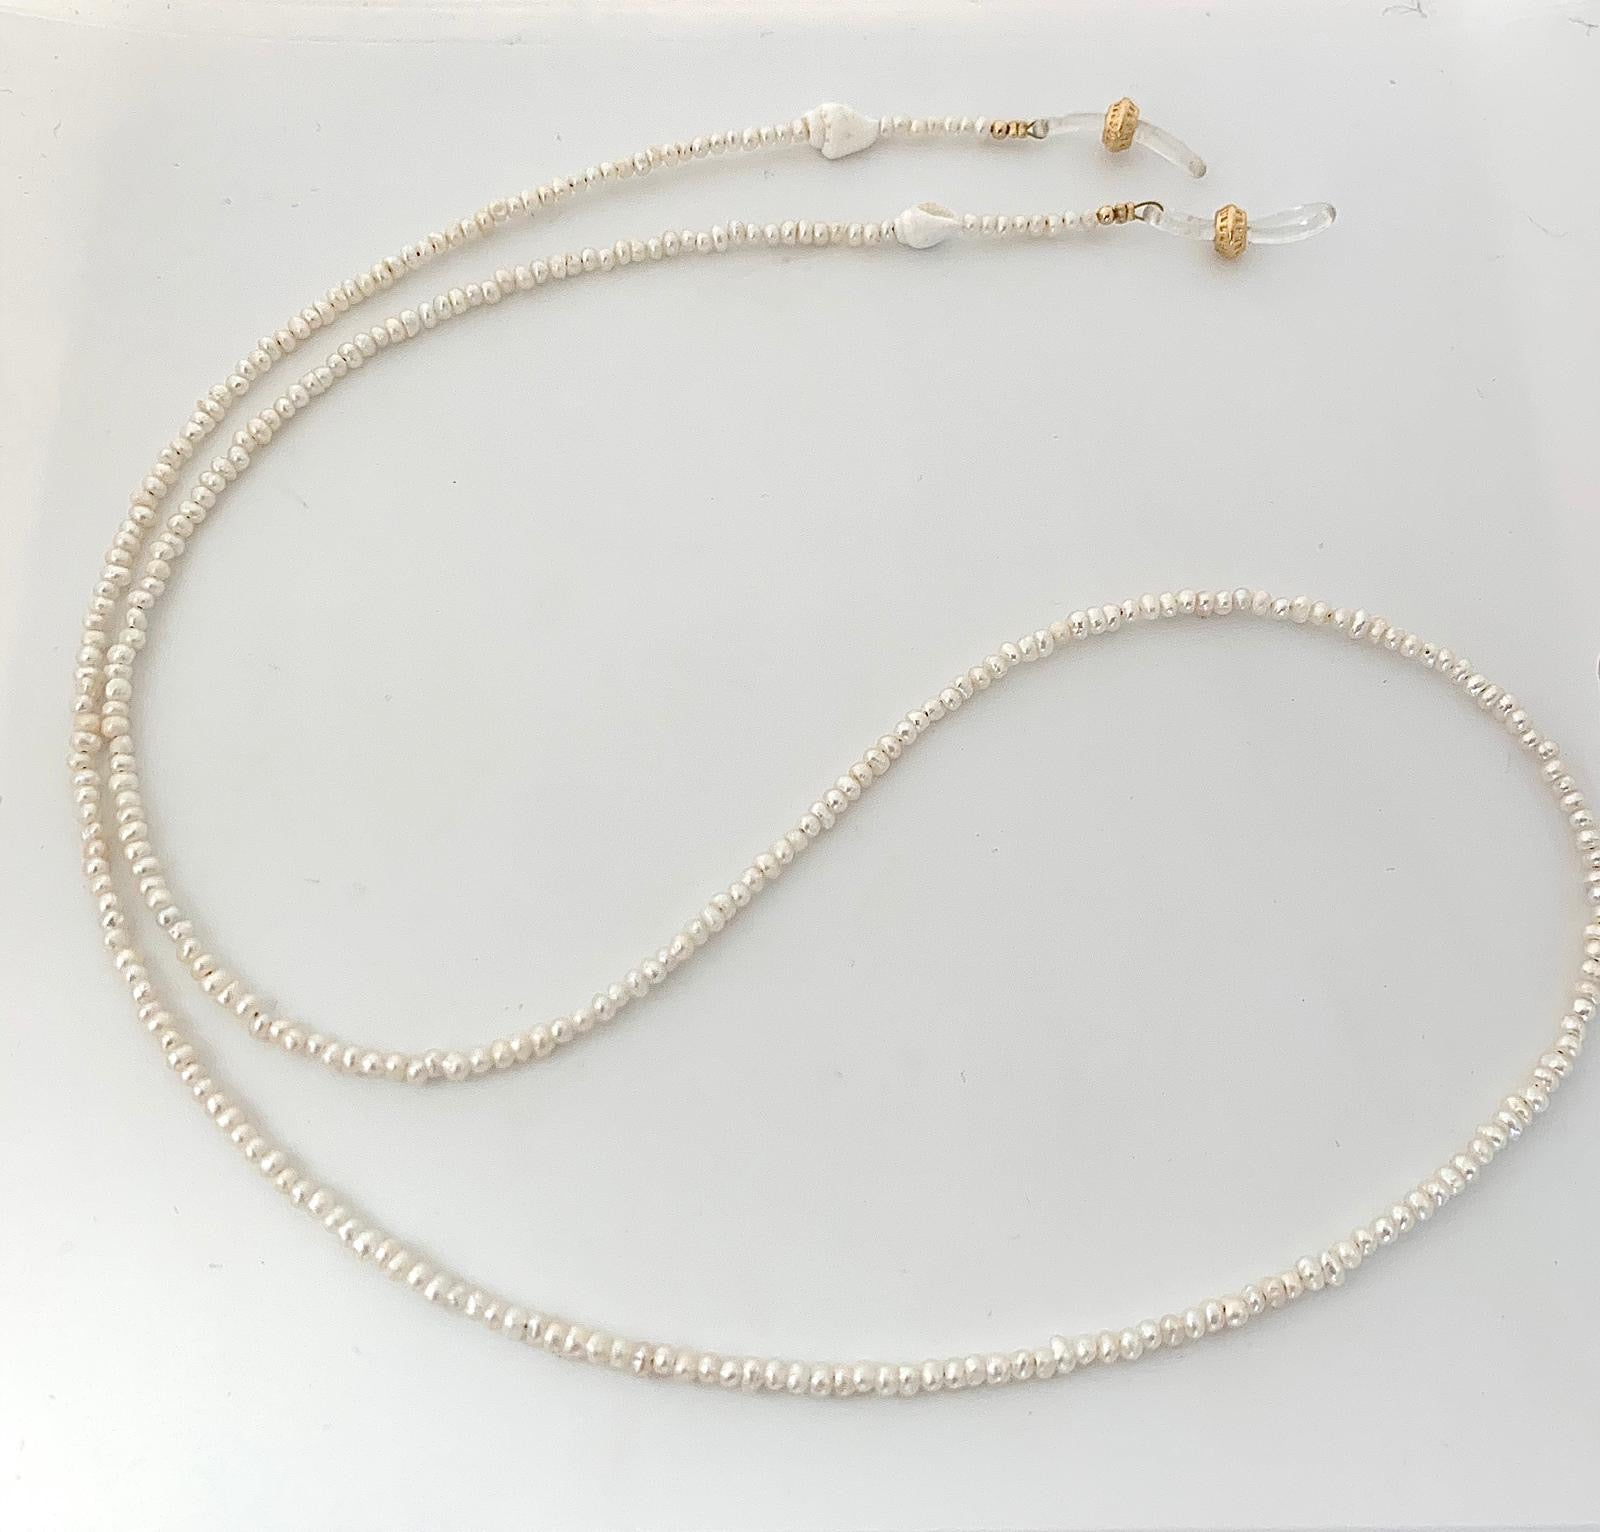 SUNGLASSES PEARL CHAIN - lublu.co